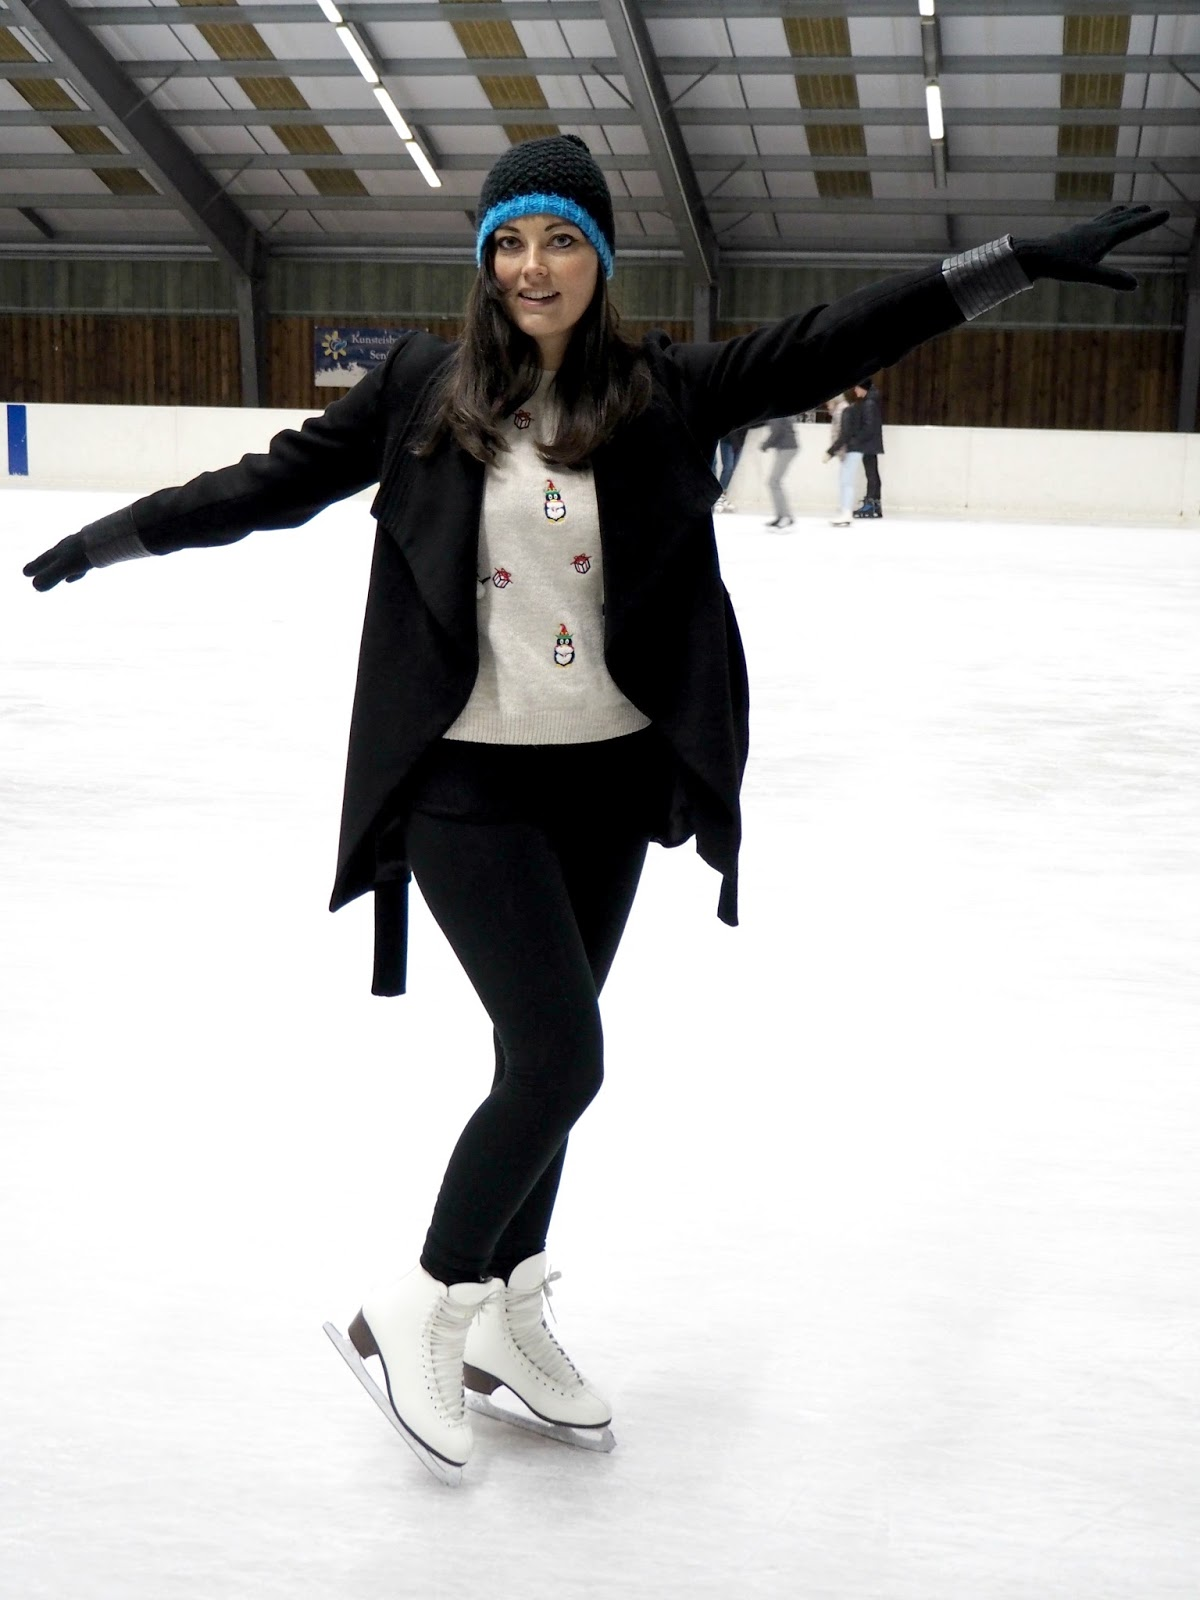 ice skating outfit